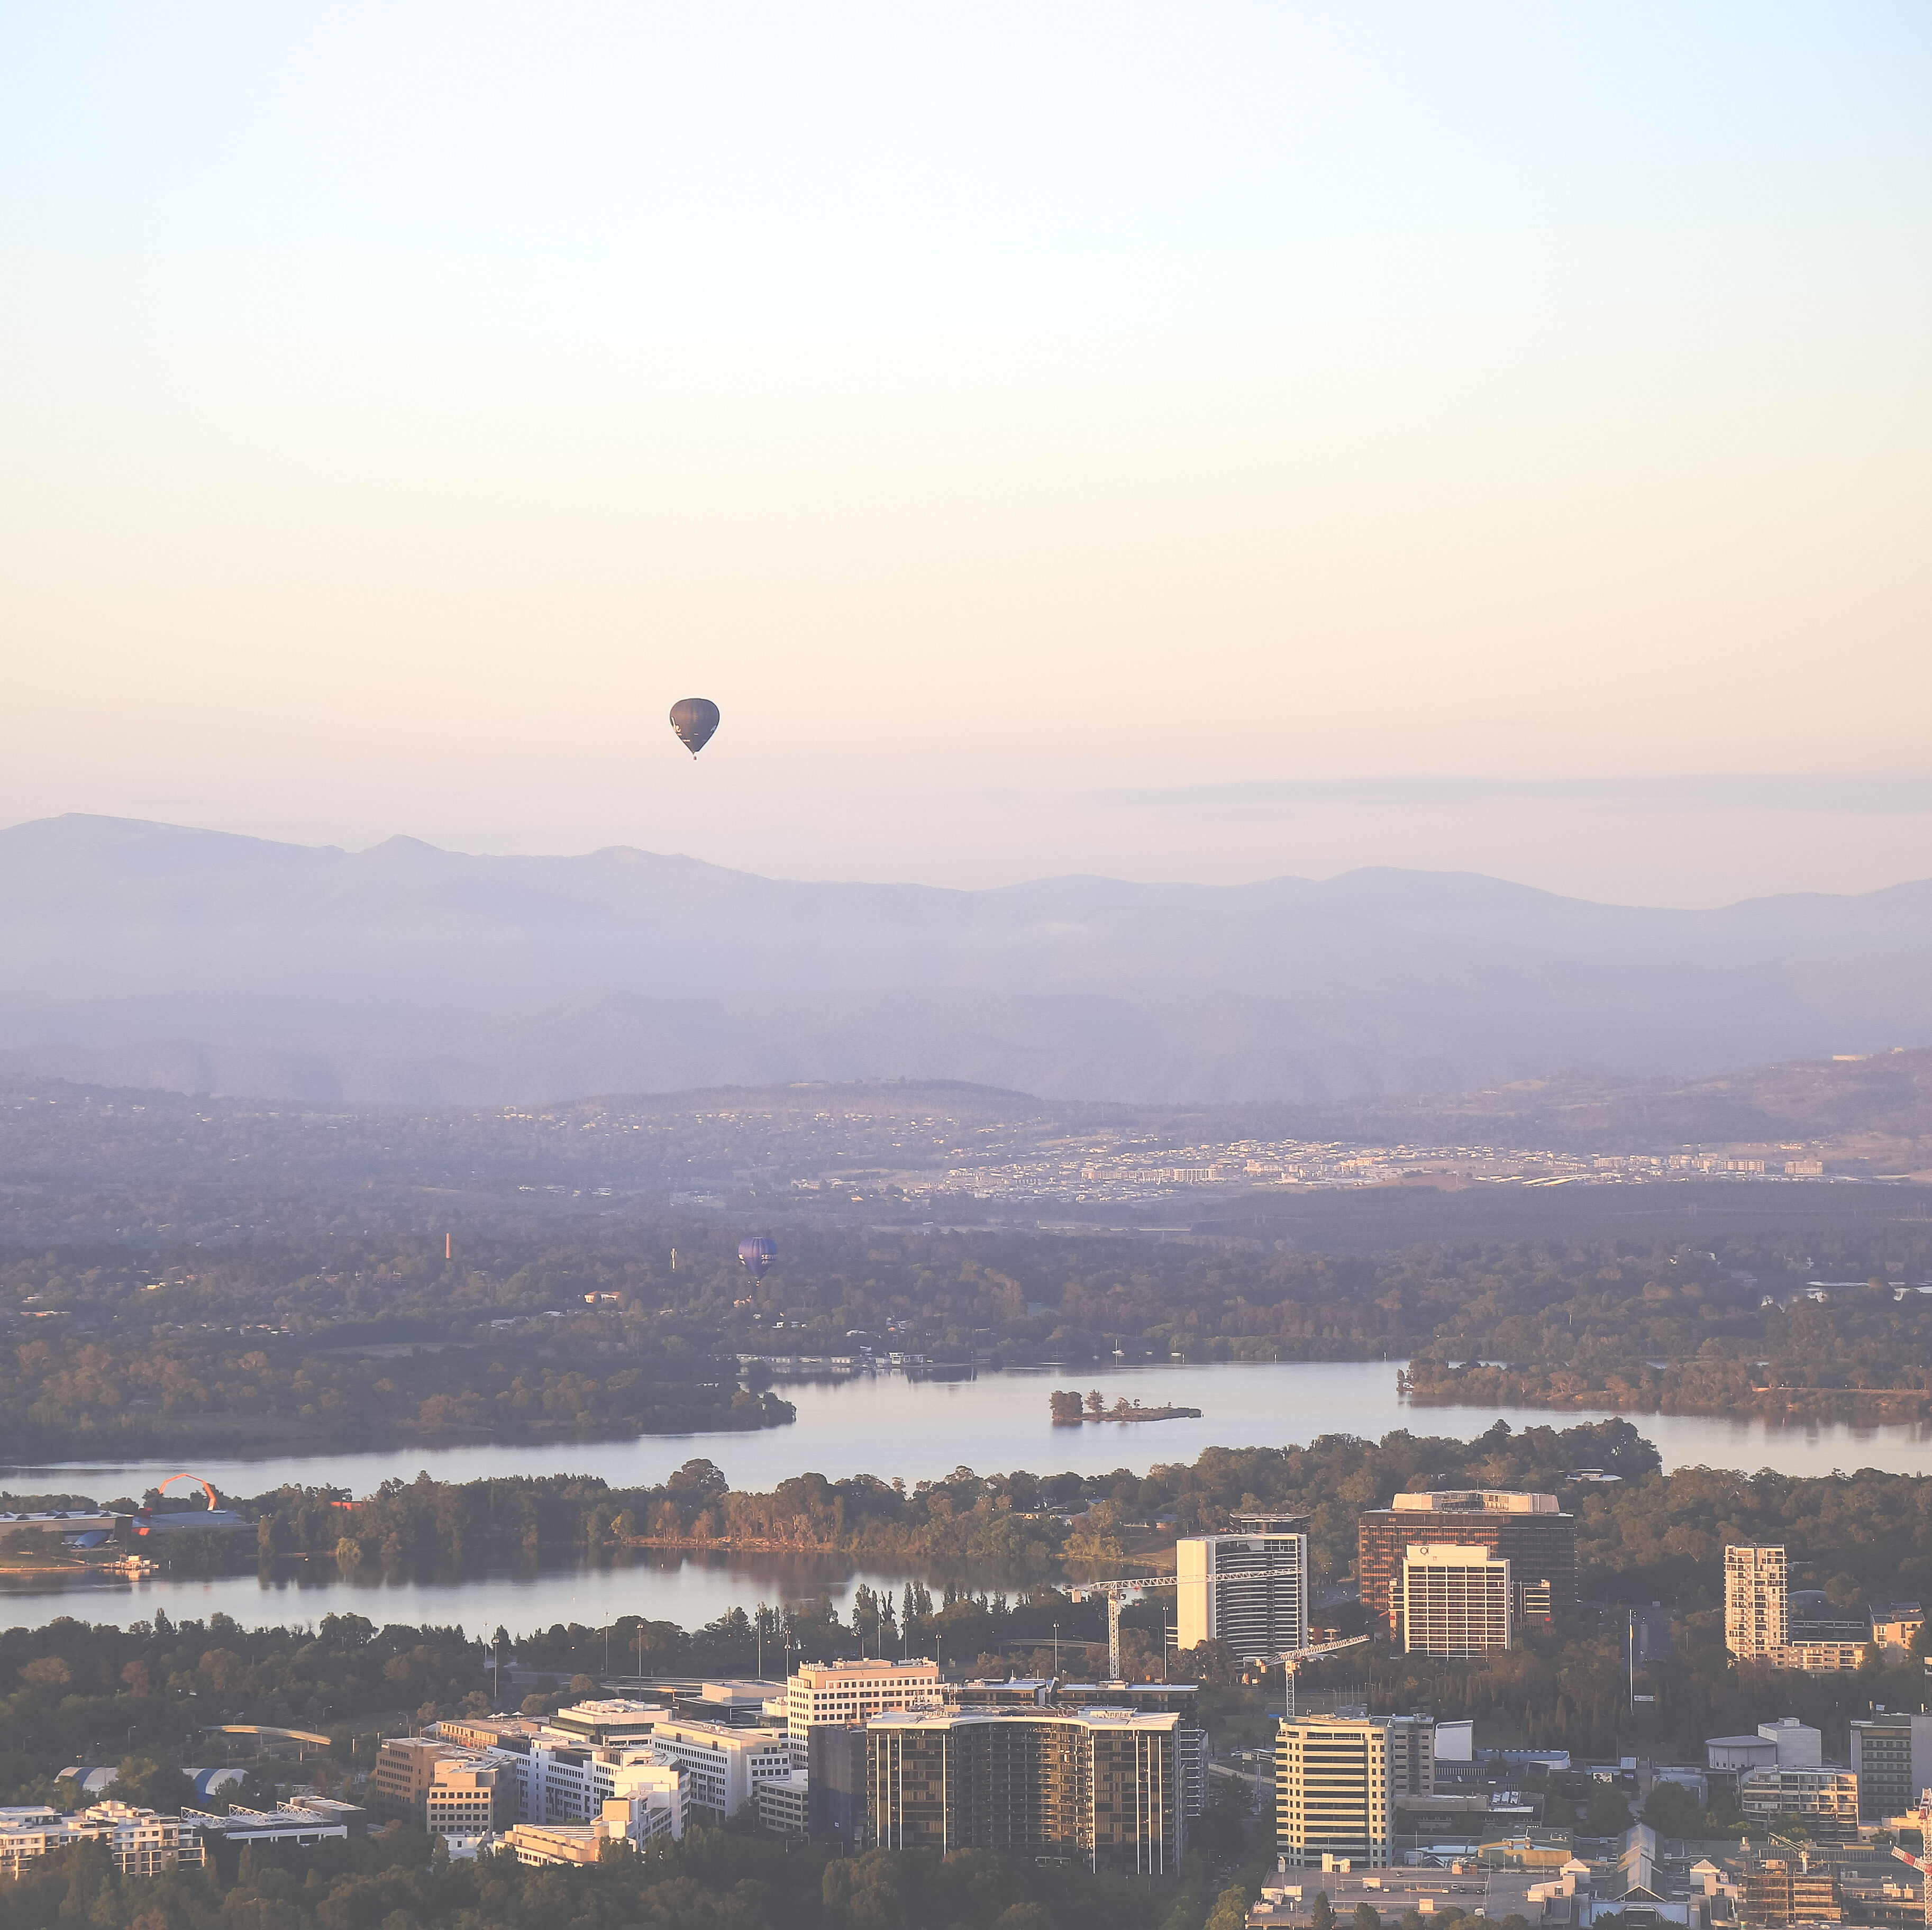 Canberra hot air balloons in sky